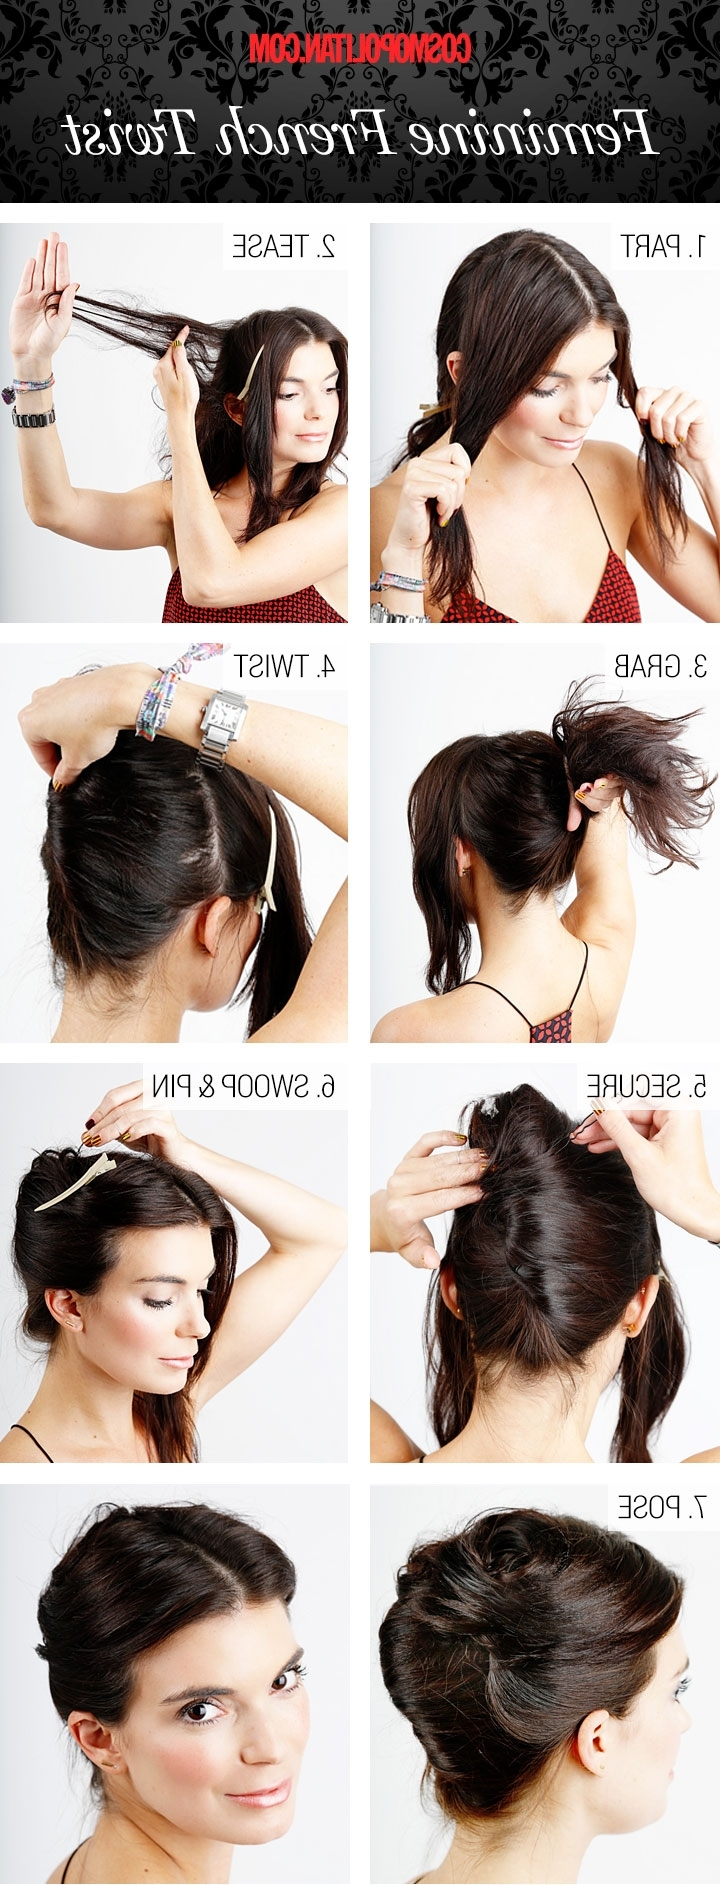 French Twist Hairstyle Within French Twist Updo Hairstyles For Medium Hair (View 10 of 15)